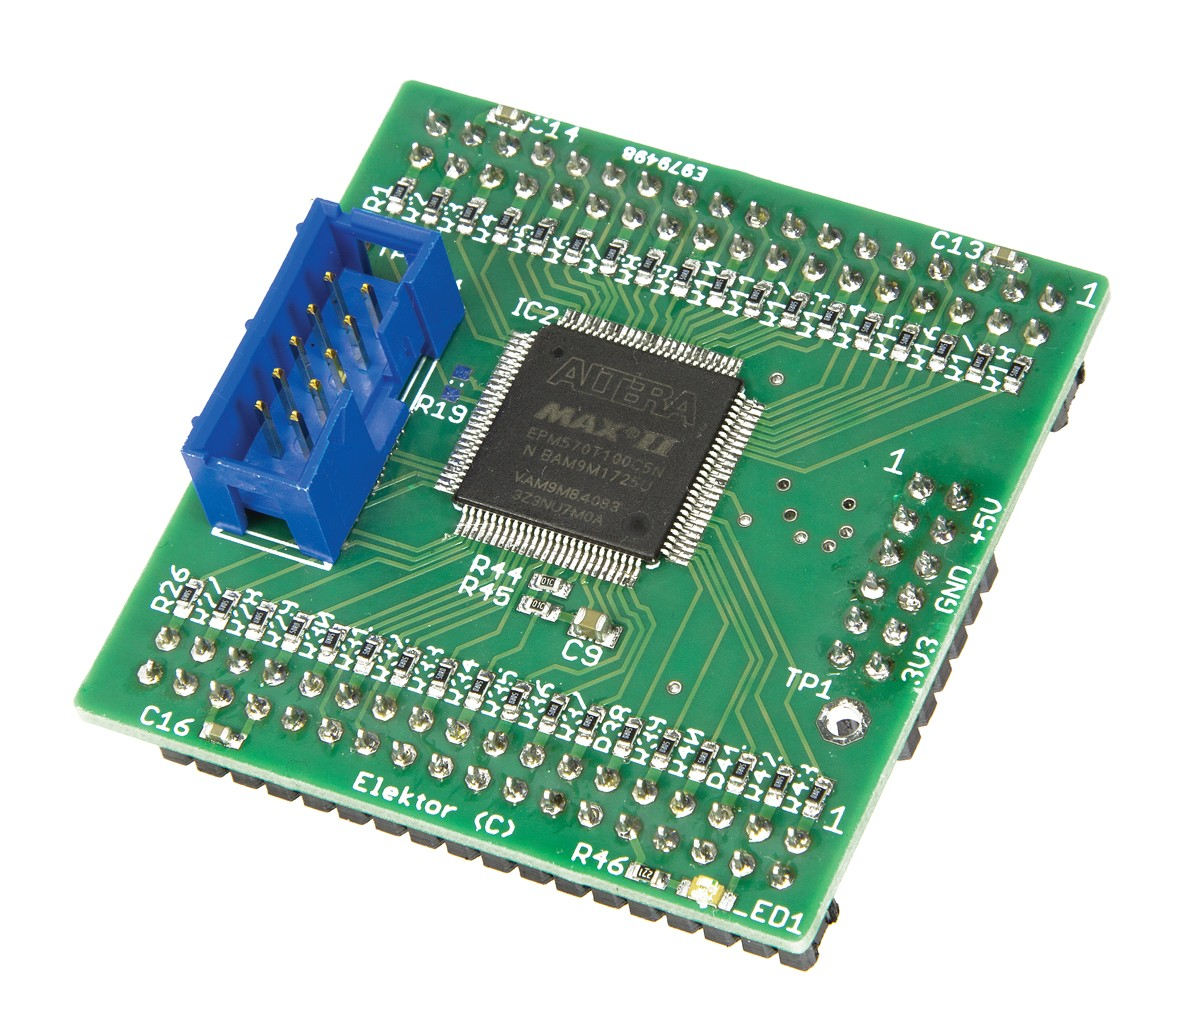 CPLD Breakout Board in DIL Format - PCB SMD mounted, K1-K4 supplied (160425-91)